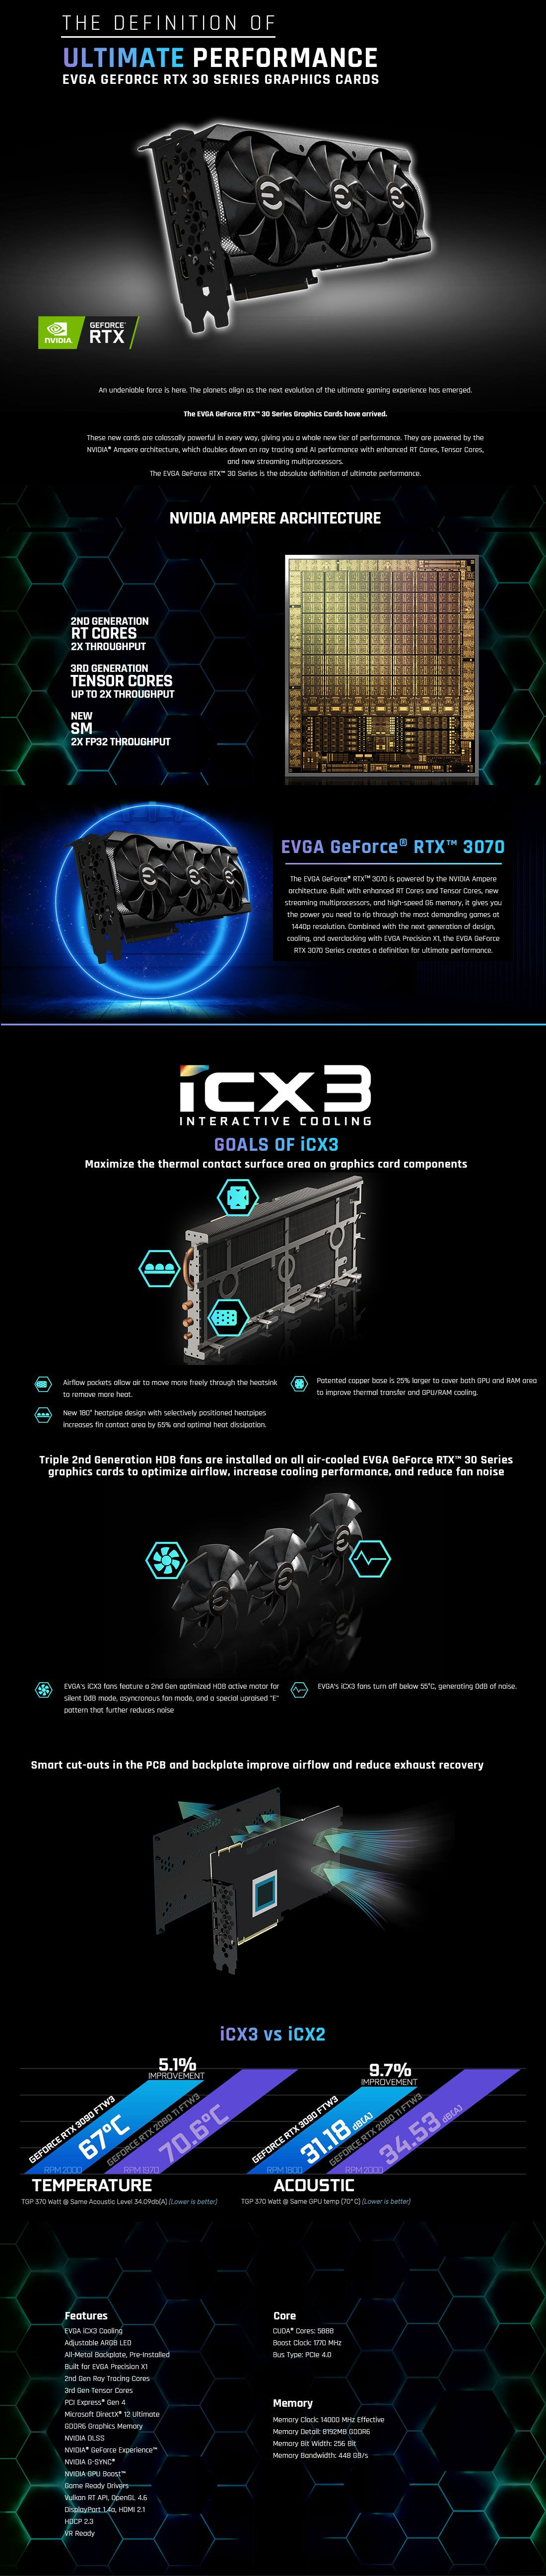 A large marketing image providing additional information about the product eVGA GeForce RTX 3070 XC3 Ultra 8GB GDDR6 - Additional alt info not provided